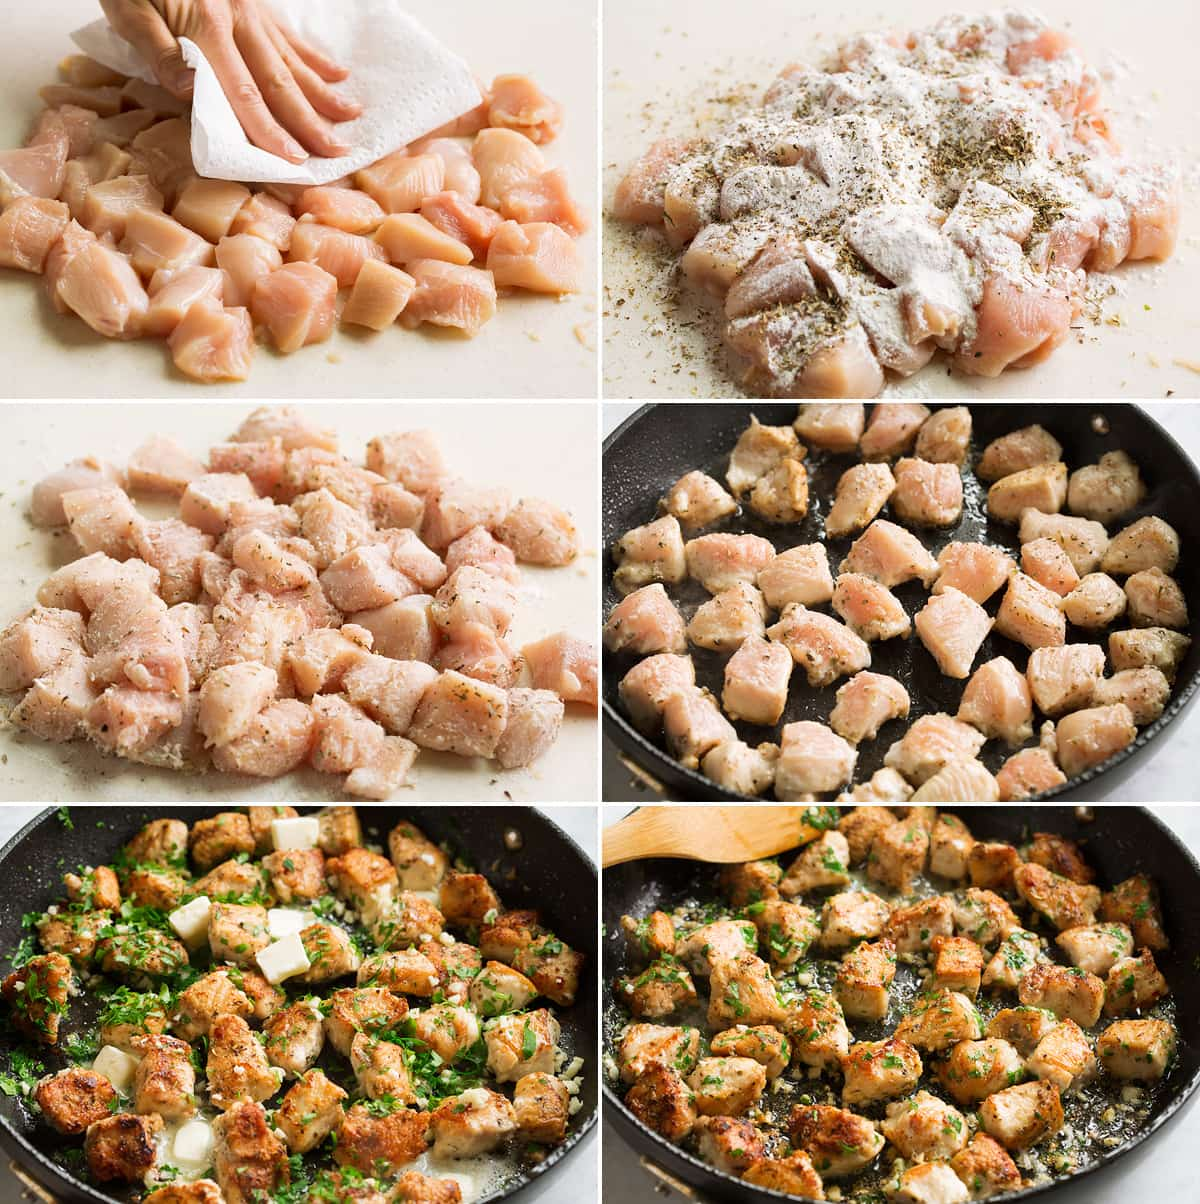 Collage image of 6 steps showing how to prepare and cook garlic butter chicken bites.